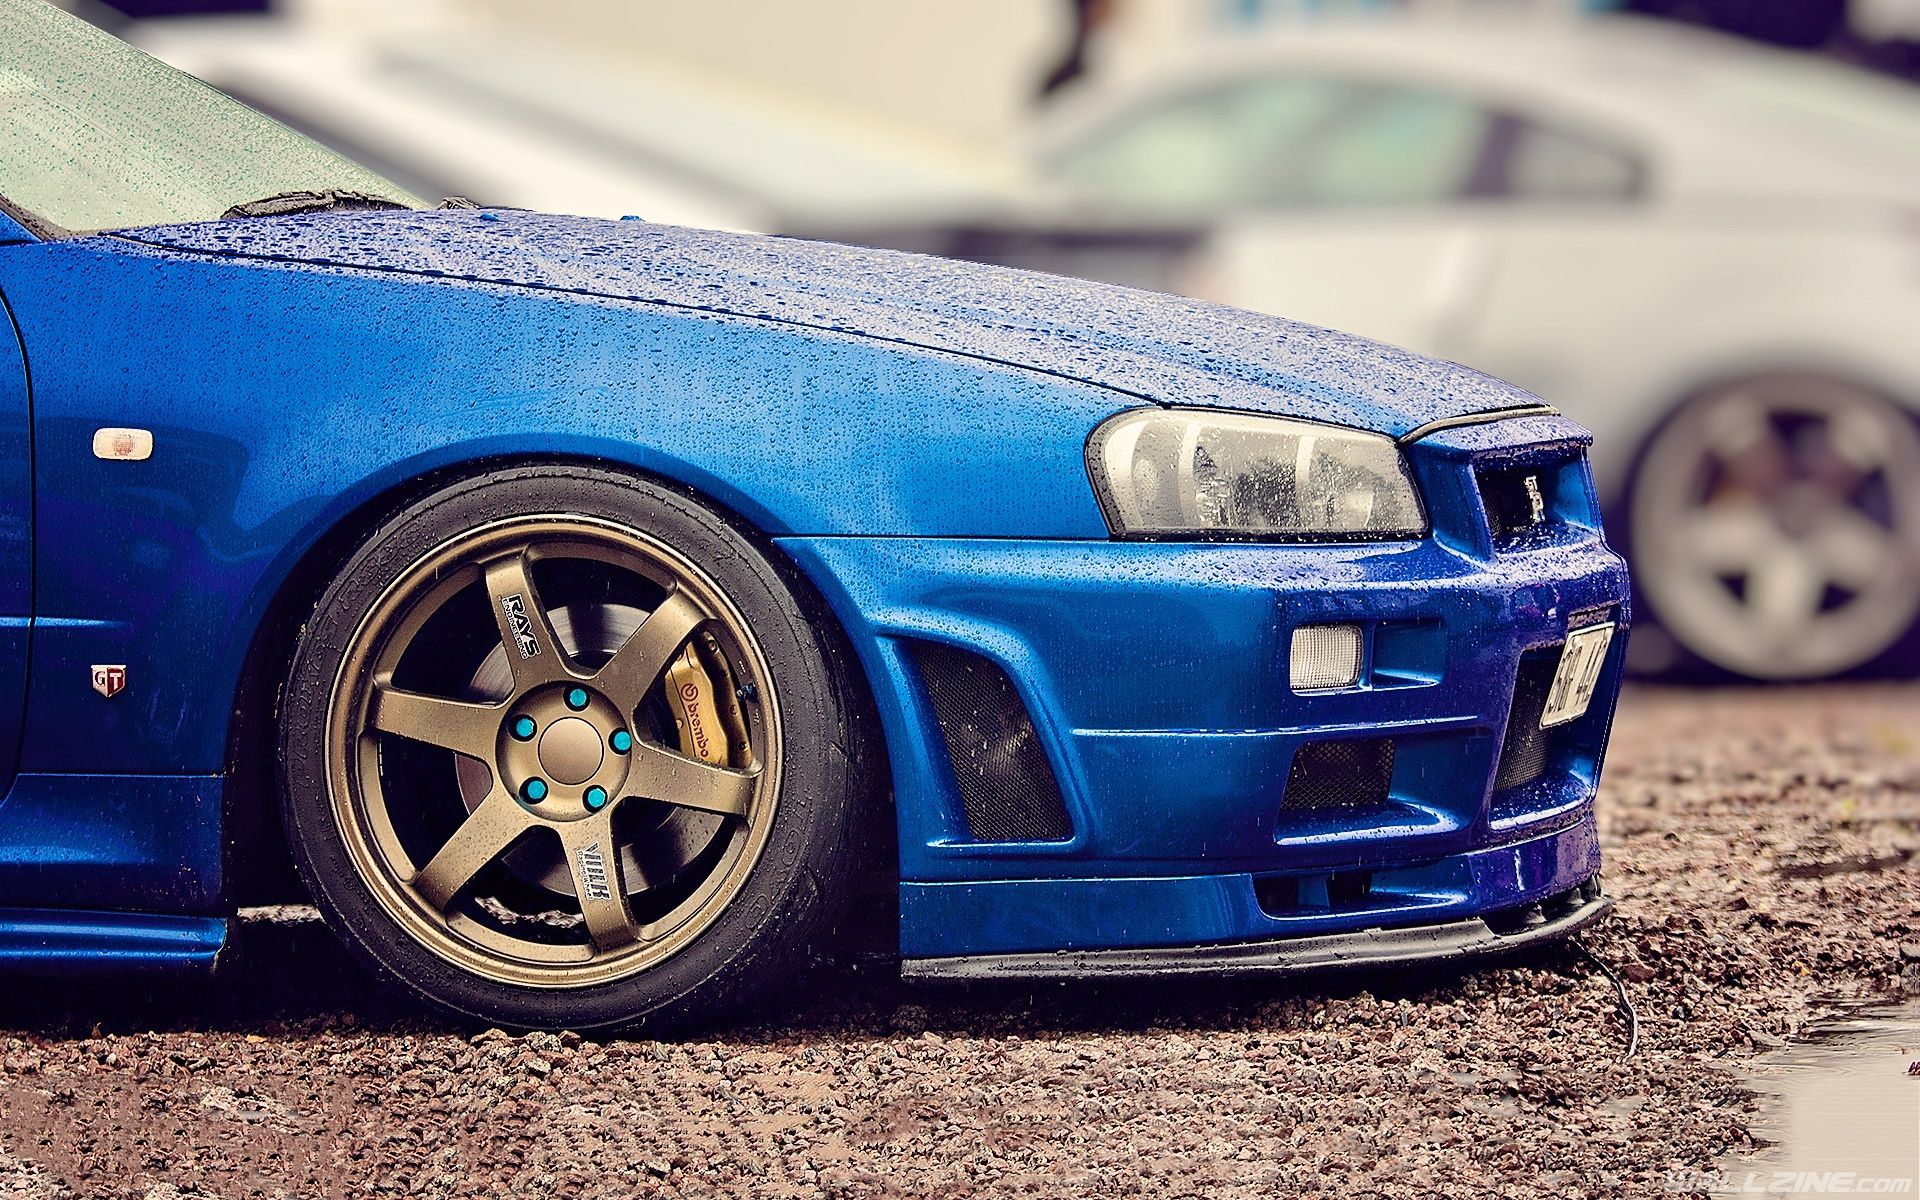 Nissan Skyline R34 Wallpaper Hd Desktop Wallpapers Nissan